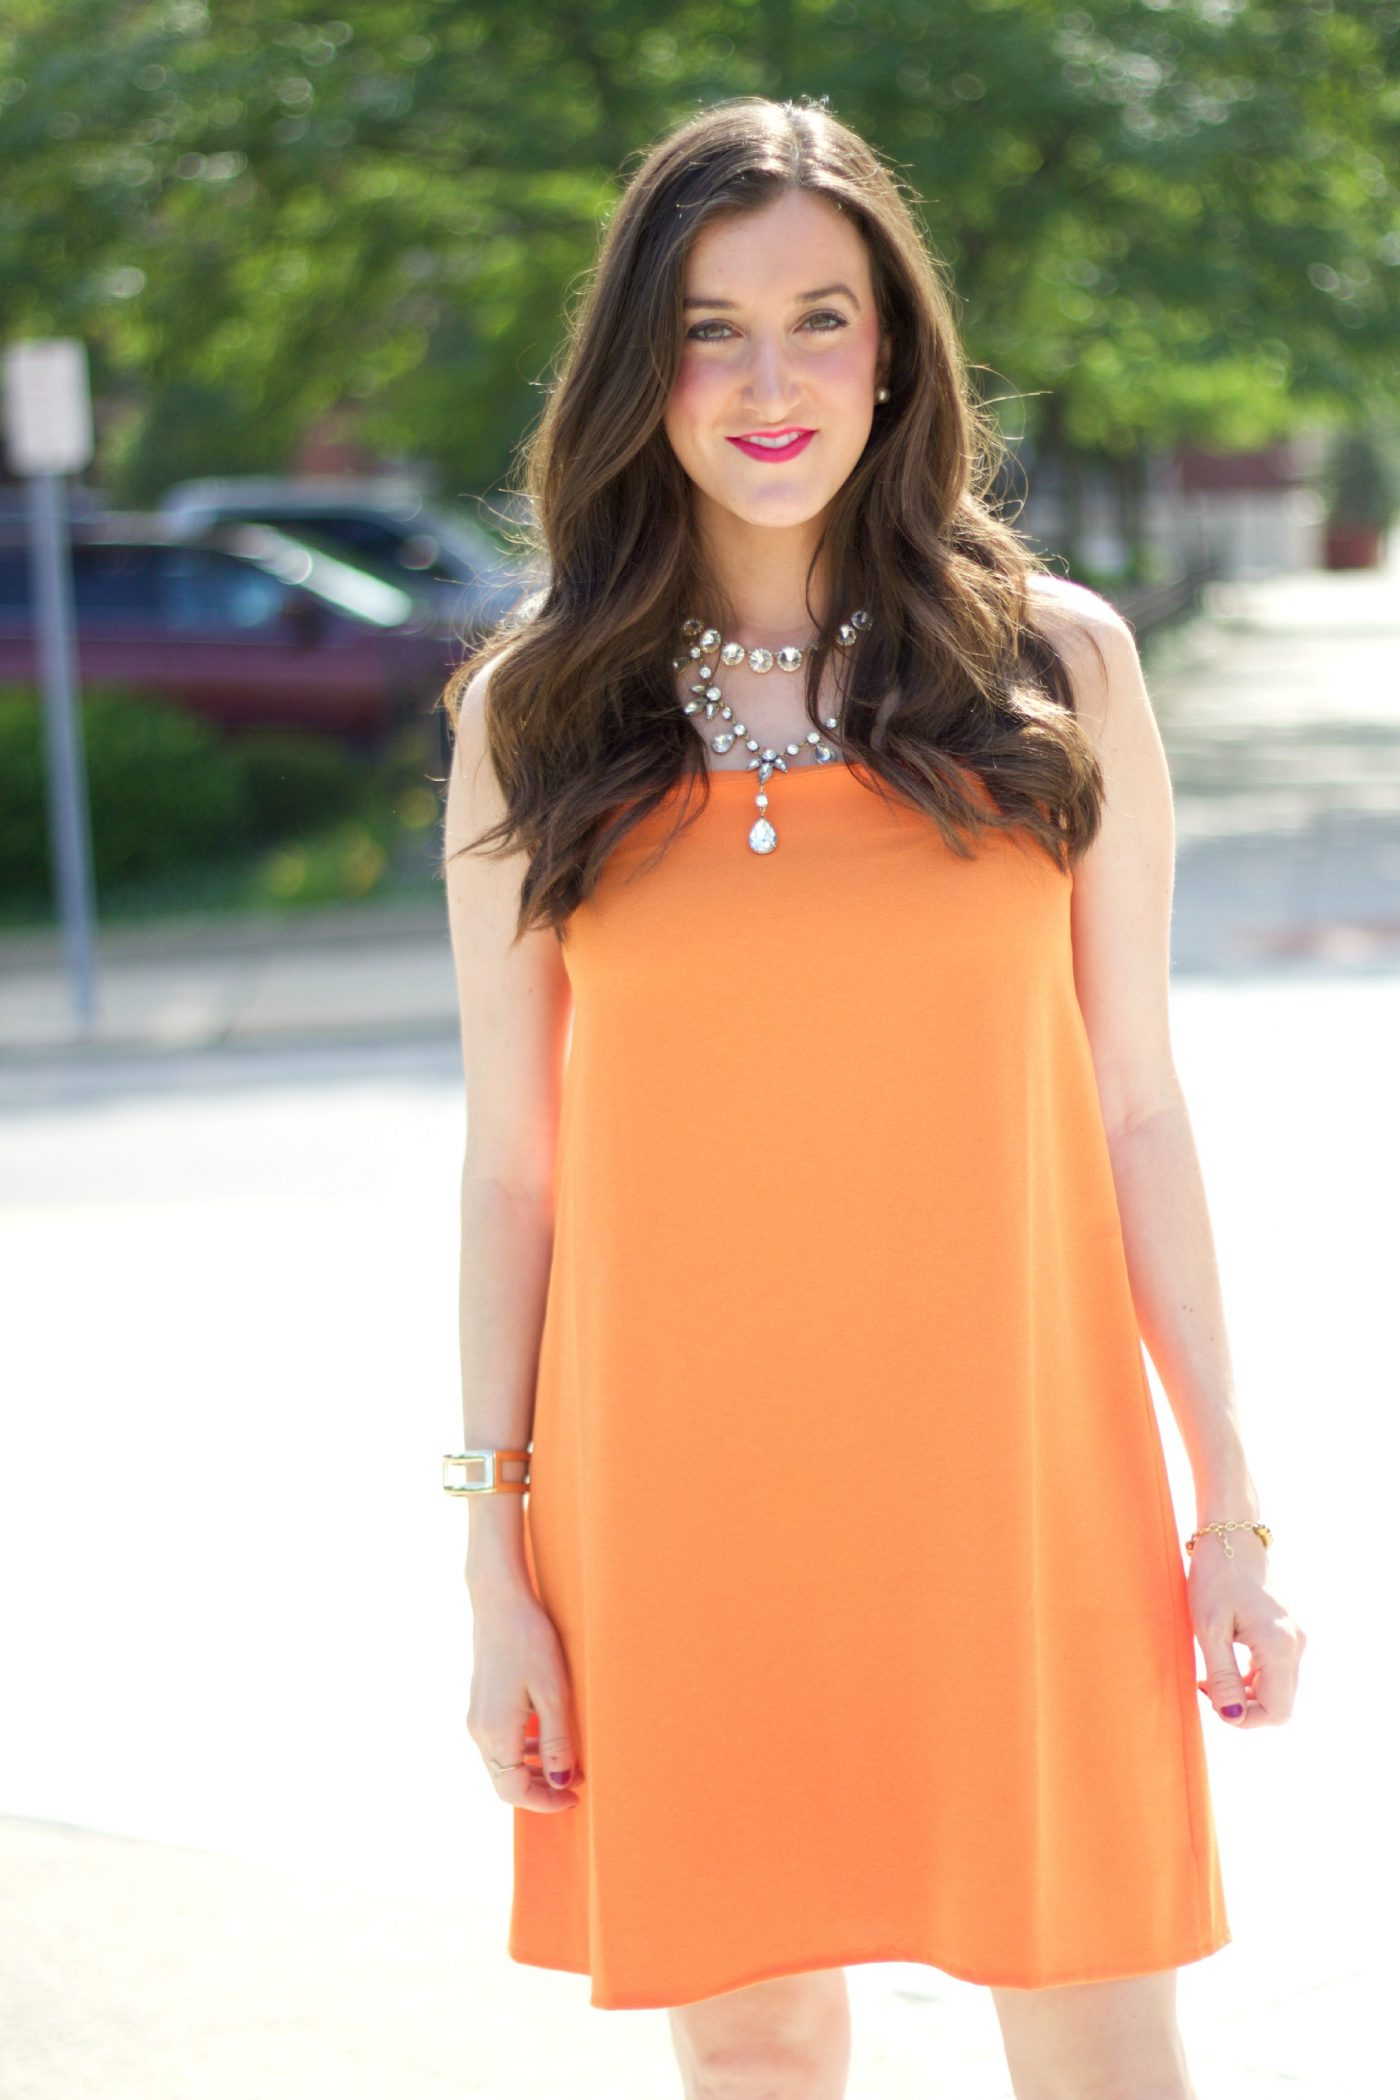 Orange Dress with Layered Necklaces